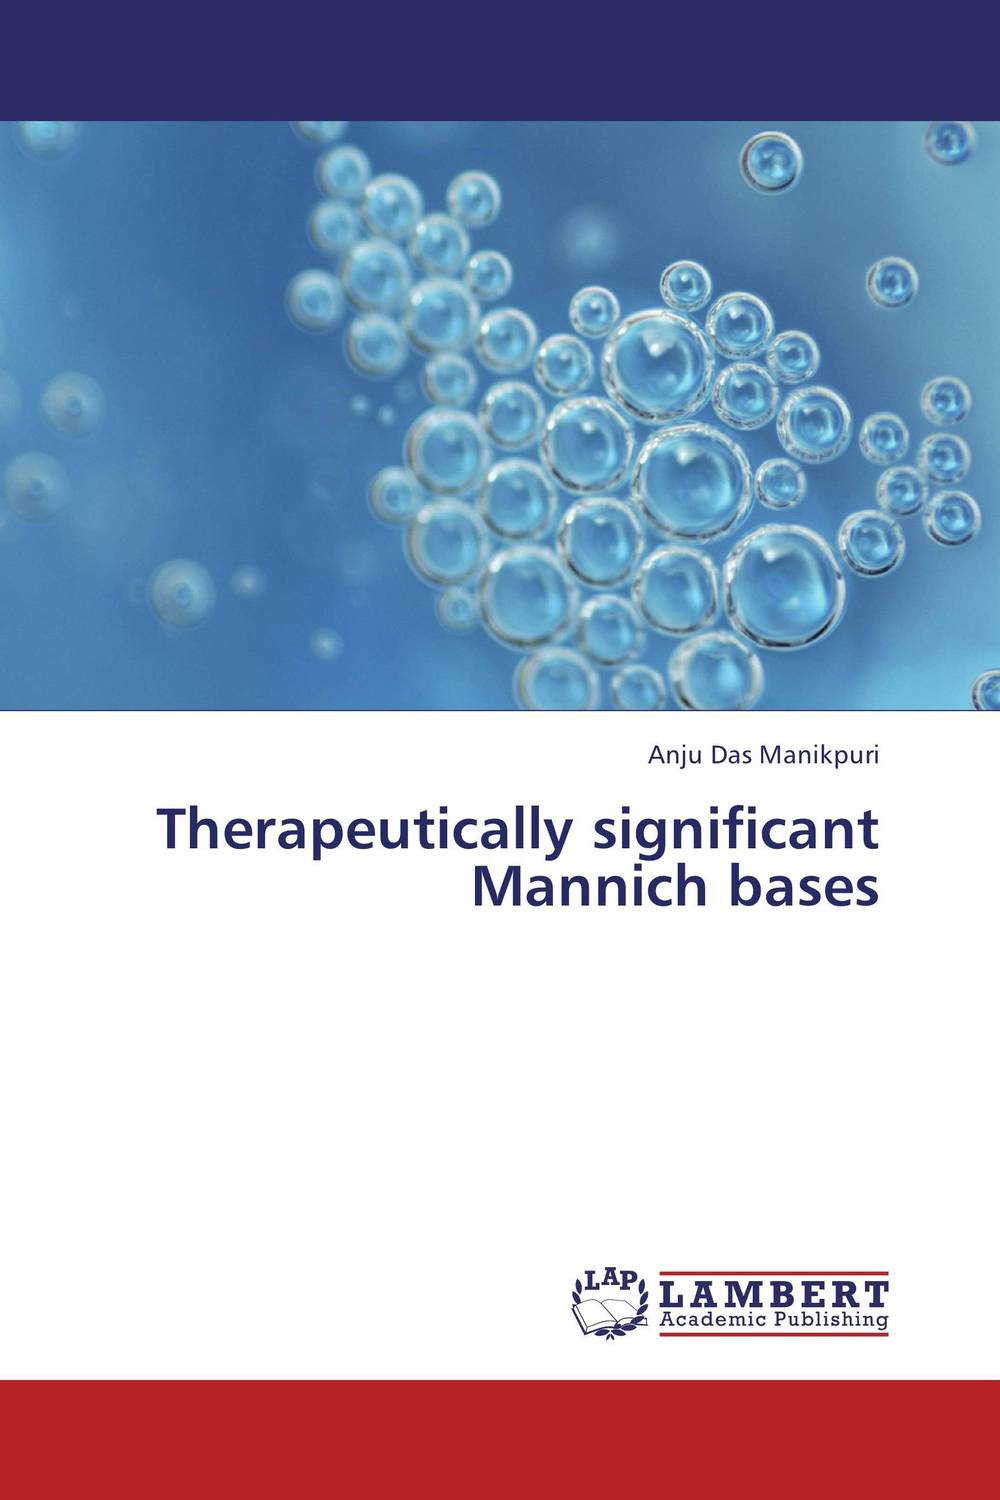 Therapeutically significant Mannich bases studies on schiff bases derived from acetophenones